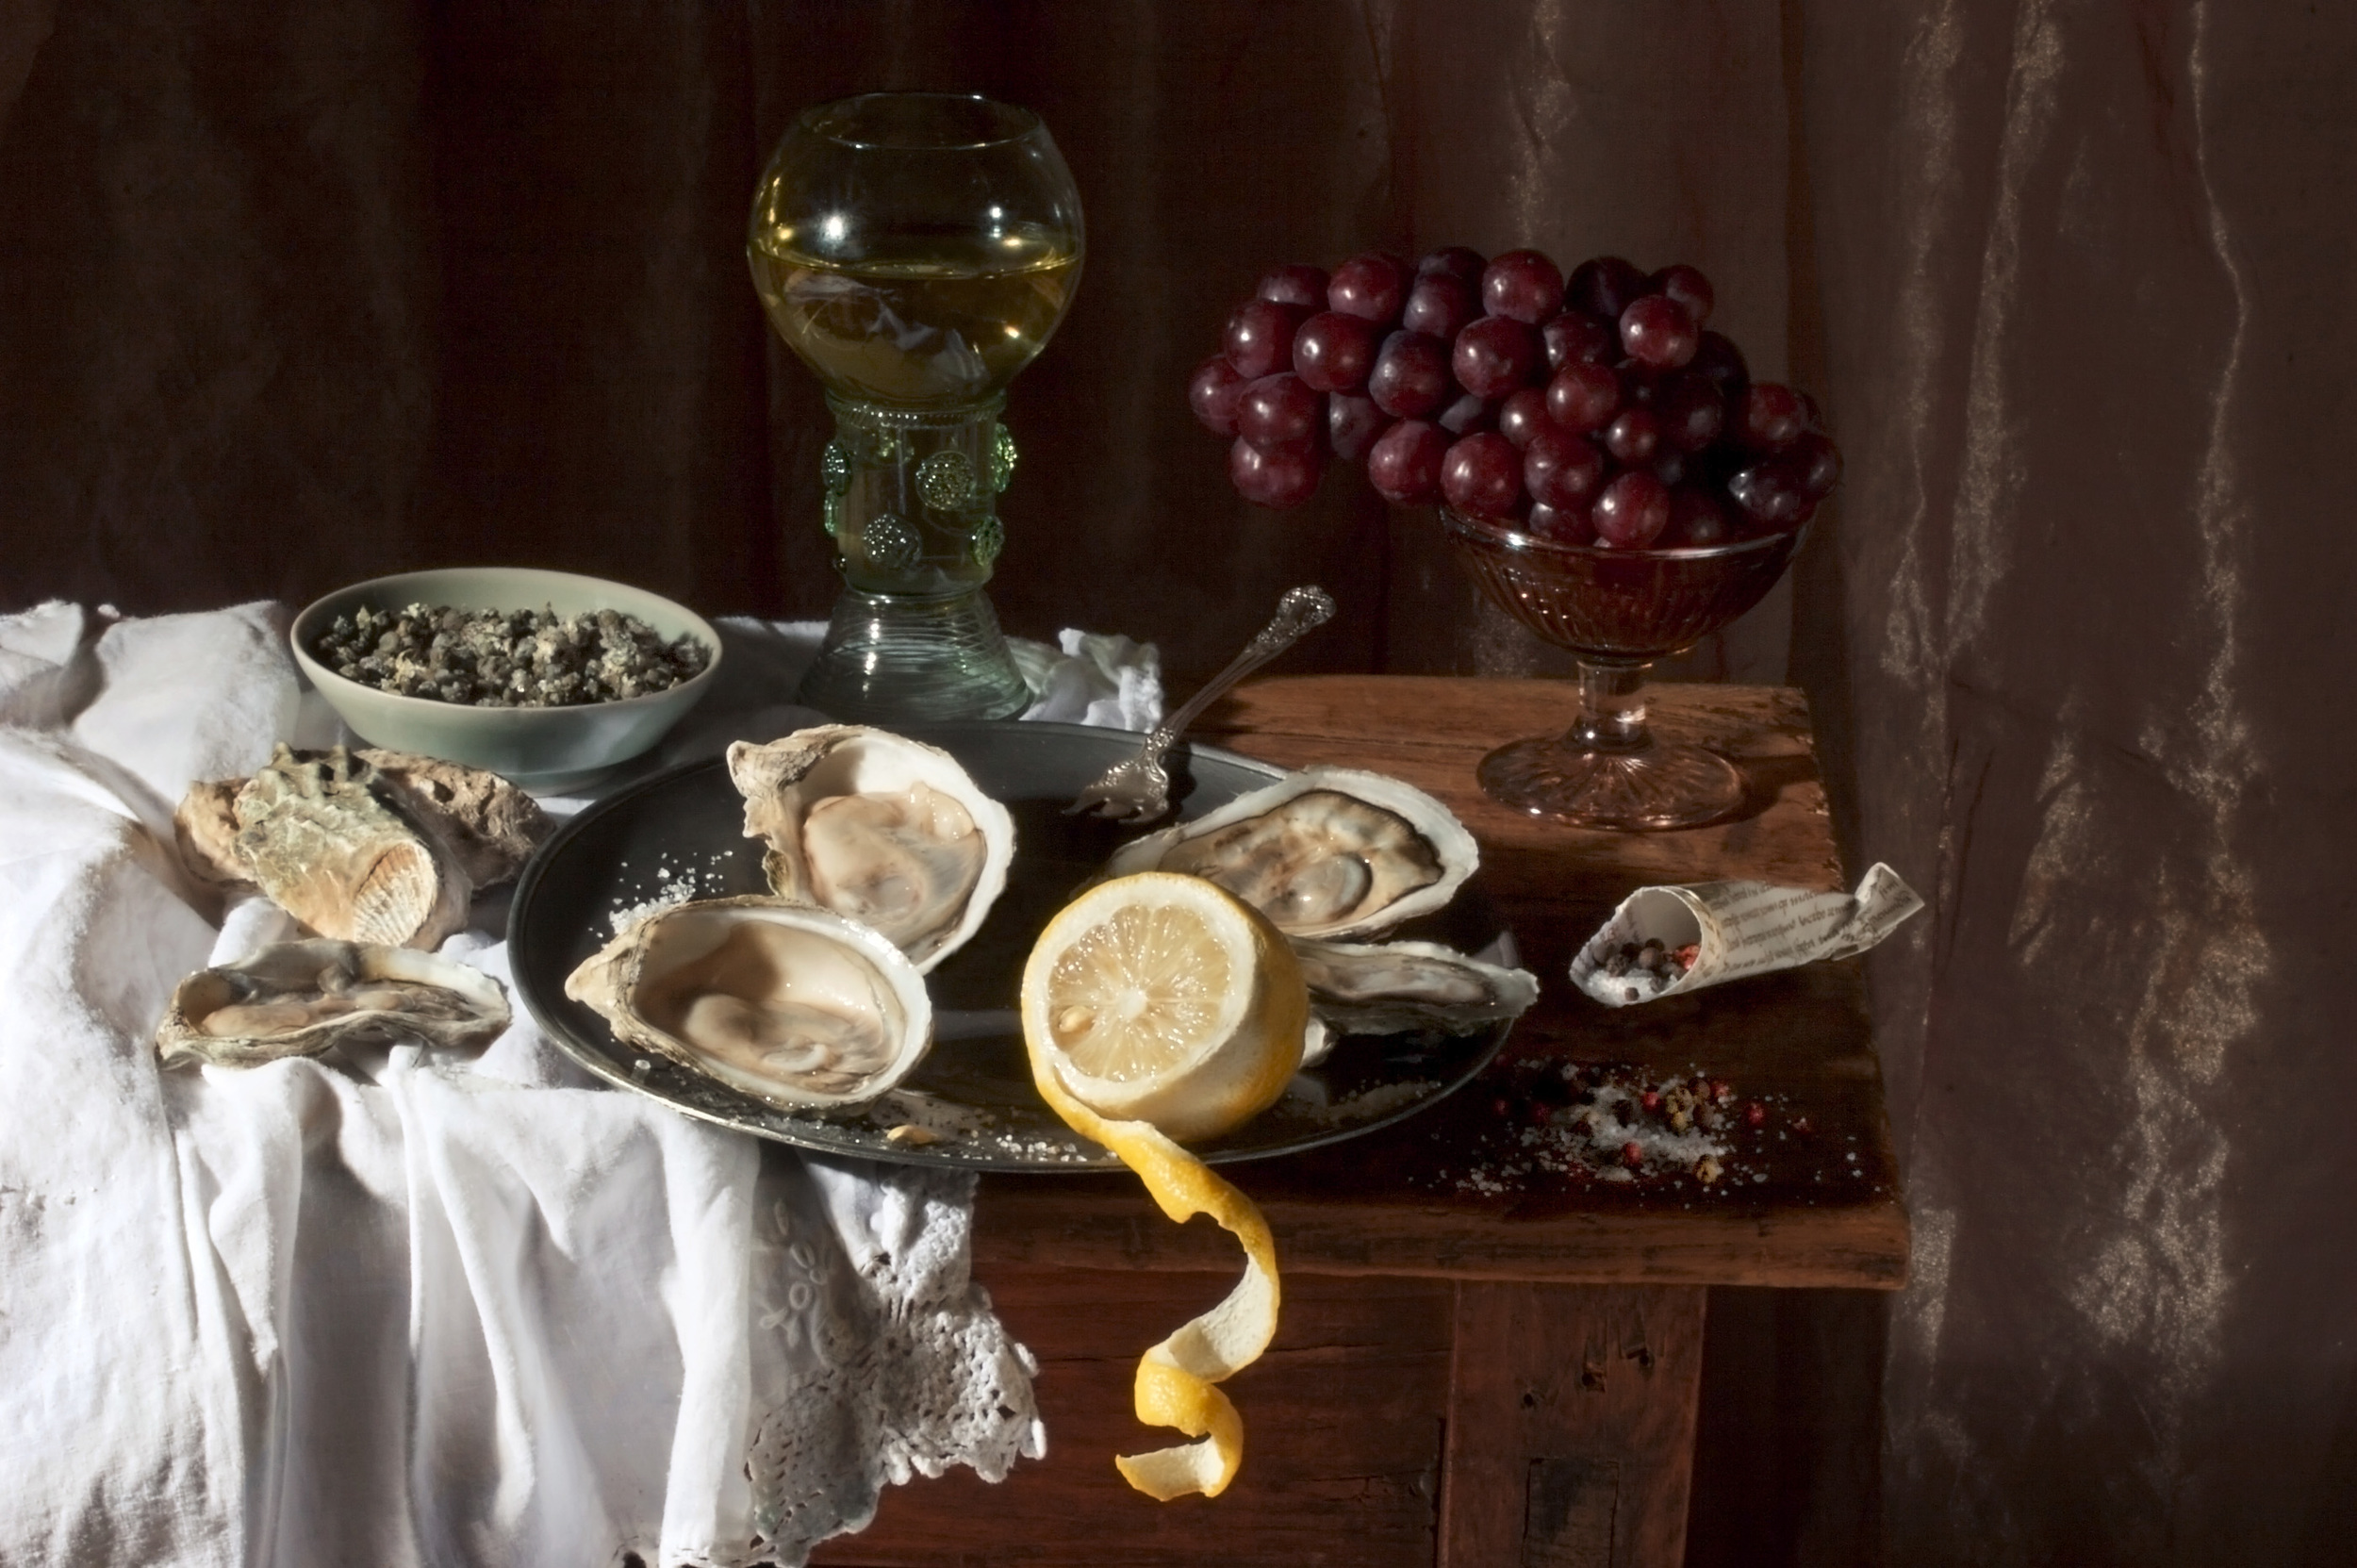 Oysters and Lemon, After W.C.H., 2008